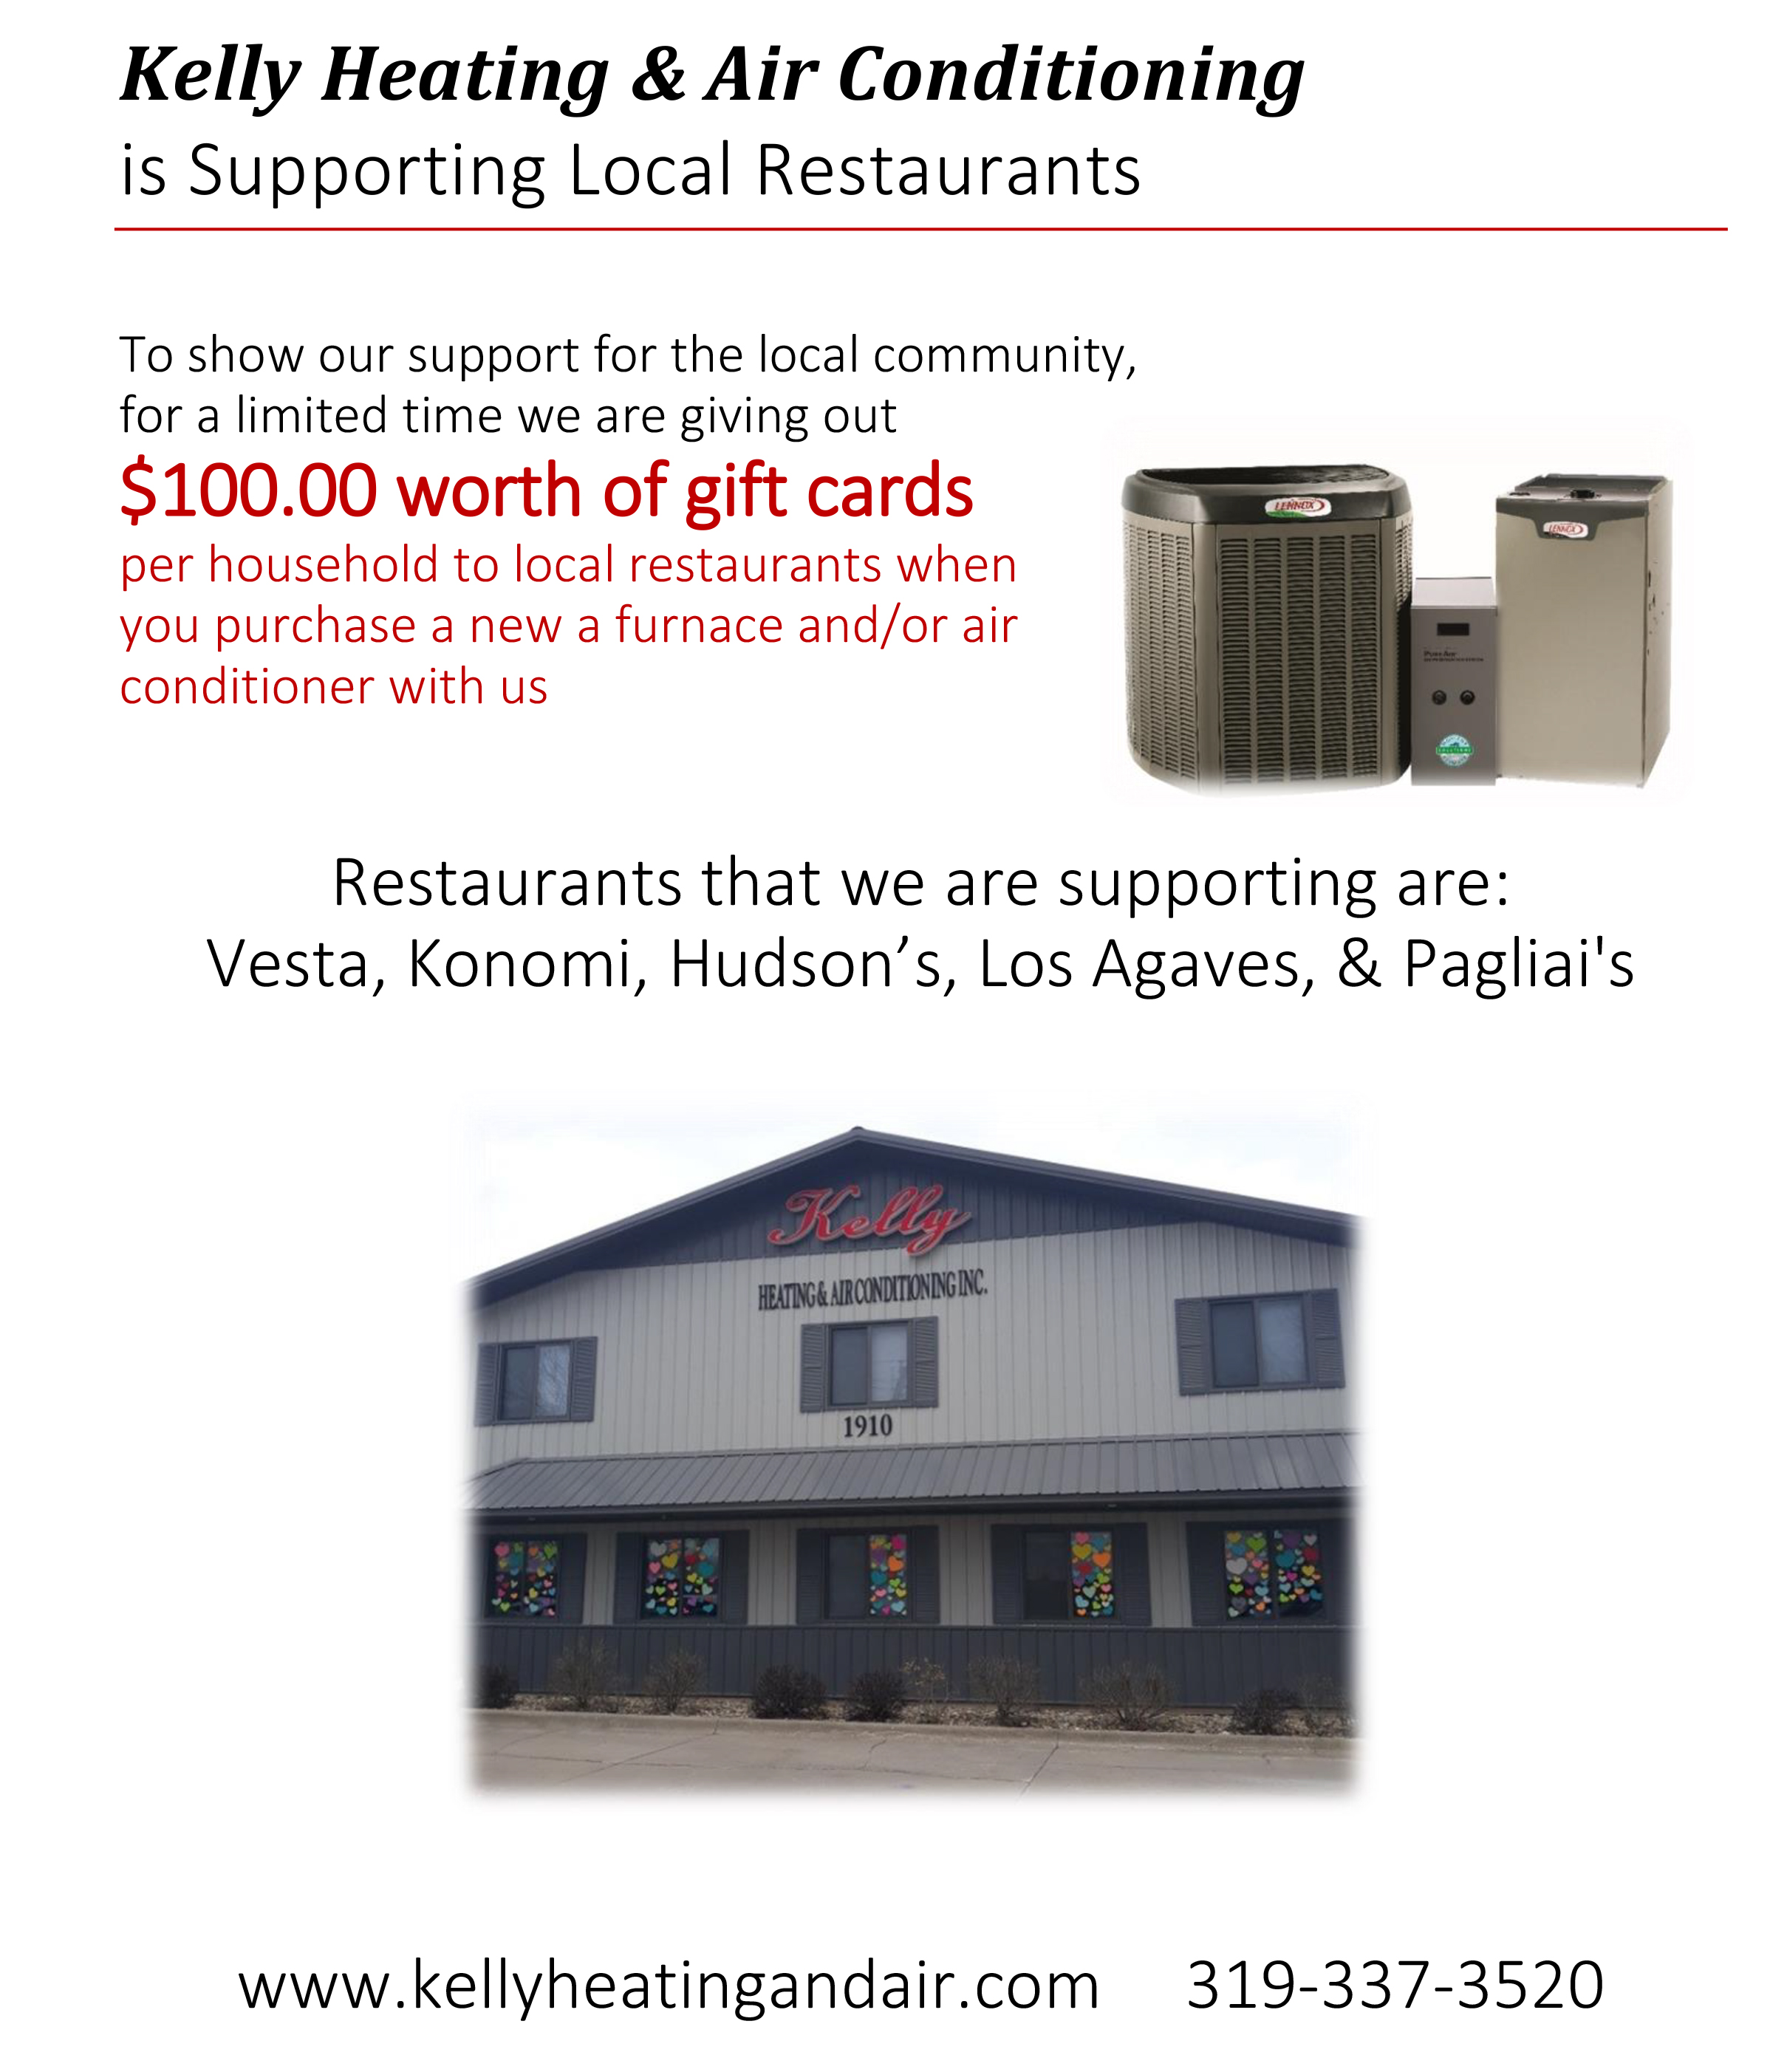 Kelly Heating Is Supporting Local Restaurants